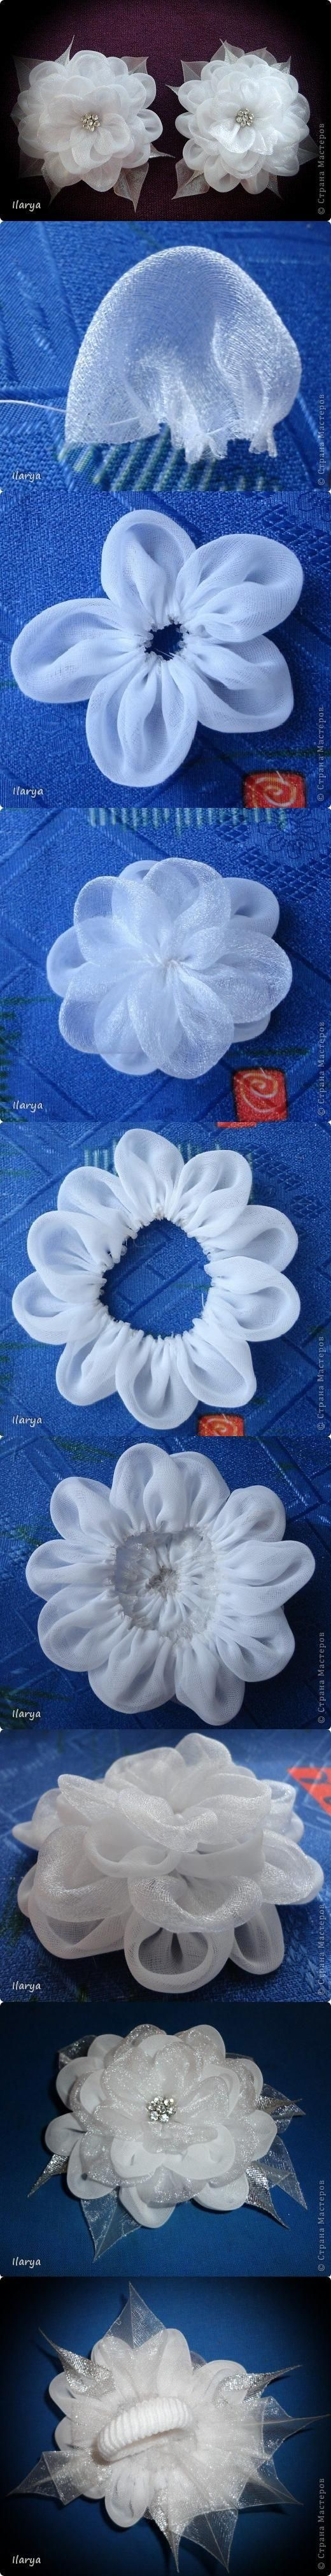 DIY Fabric Lust Flower DIY Fabric Lust Flower by diyforever